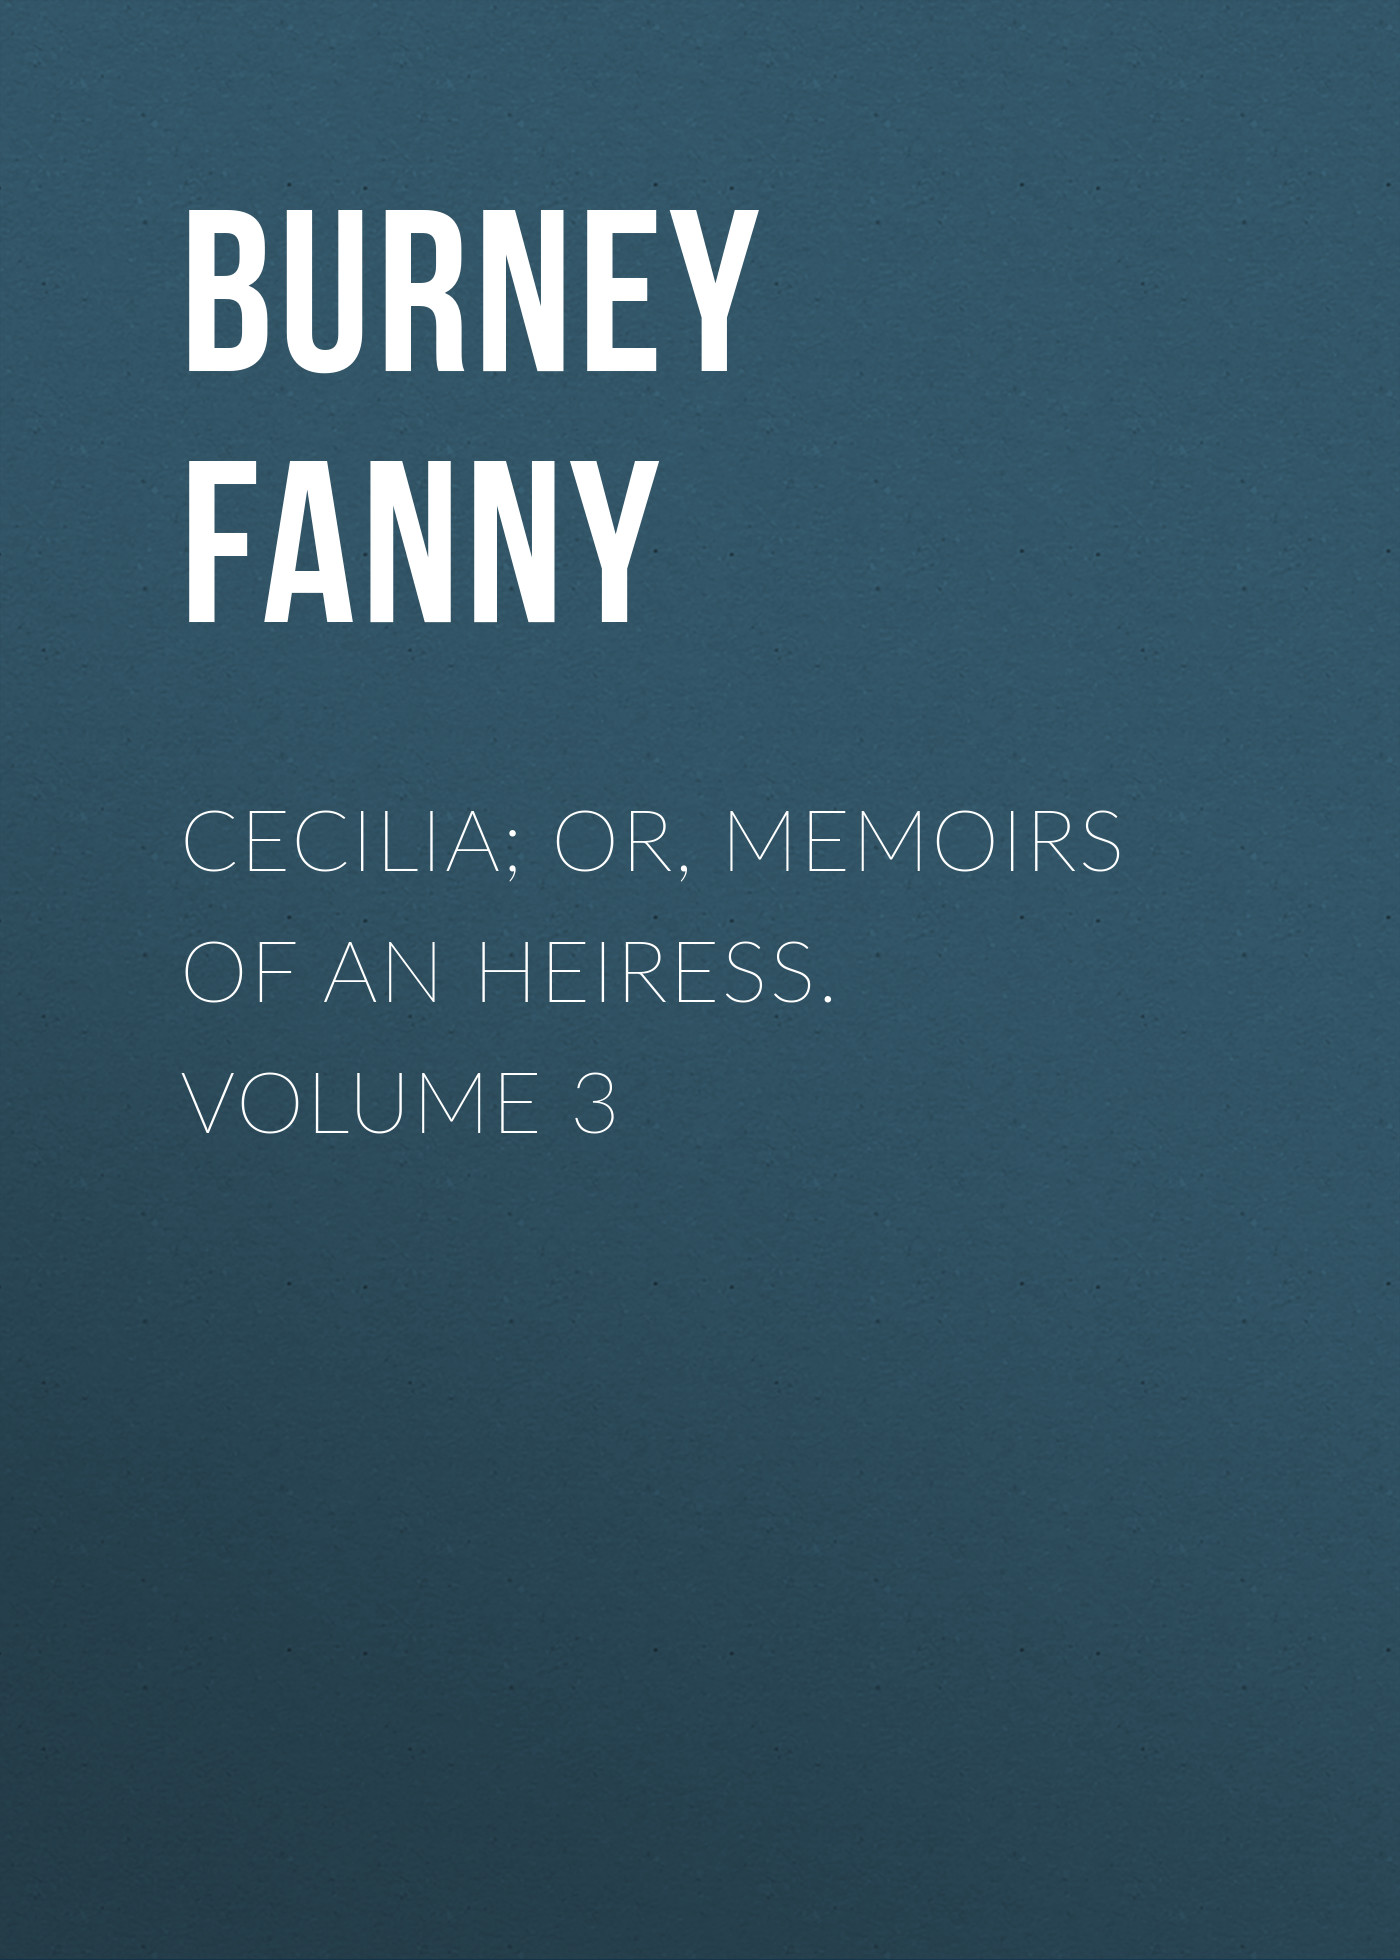 Burney Fanny Cecilia; Or, Memoirs of an Heiress. Volume 3 burney fanny the wanderer or female difficulties volume 5 of 5